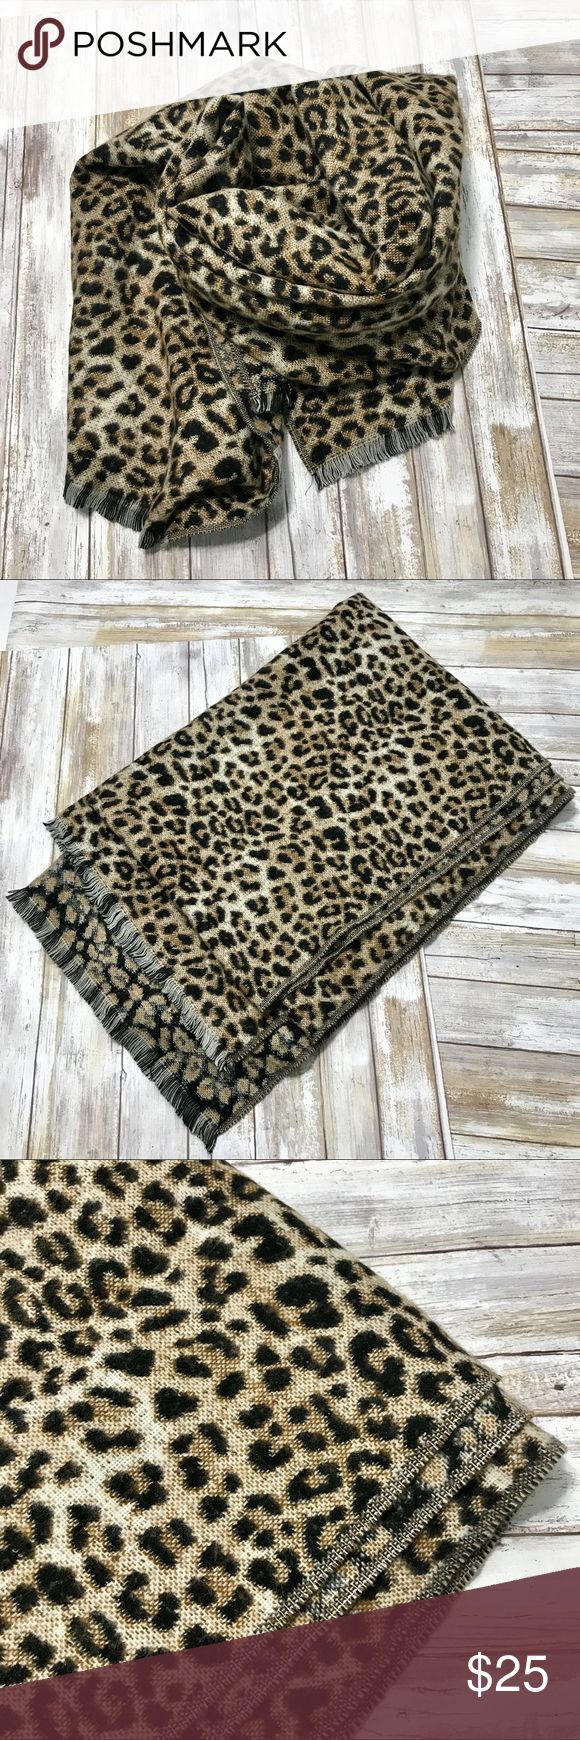 ‼️Cheetah Scarf XL‼️ Awesome Cheetah Scarf! By A New Day.  I love this baby's. Had to have her for my closet. It's so soft and so large...it's like a blanket! So versatile. Perfect for travel. Warm and has timeless style.  Brand new w detached tags. a new day Accessories Scarves & Wraps